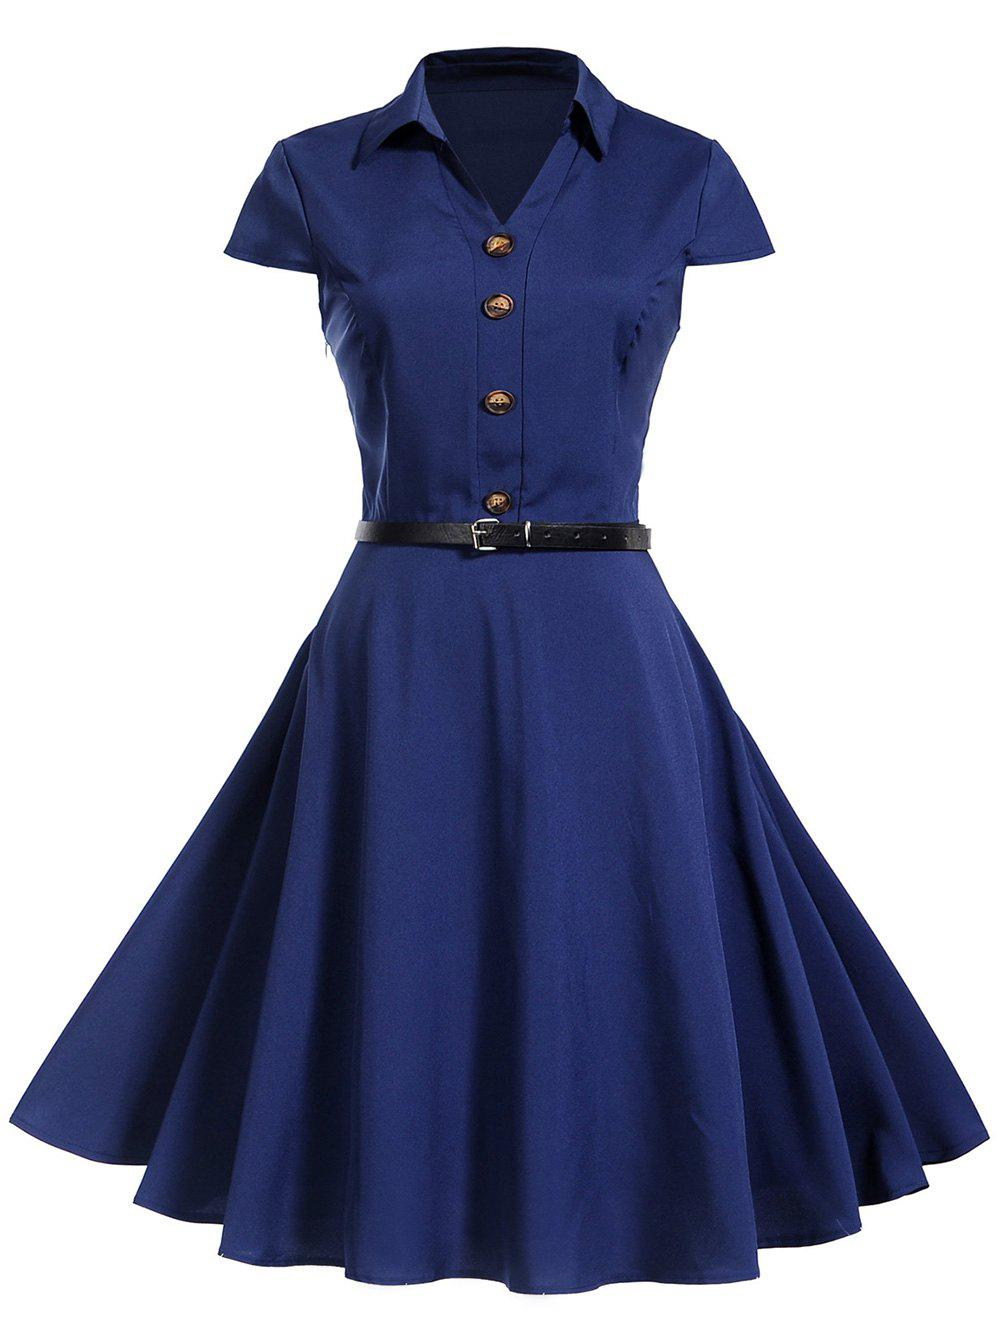 Shops Vintage Buttons Pin Up Dress